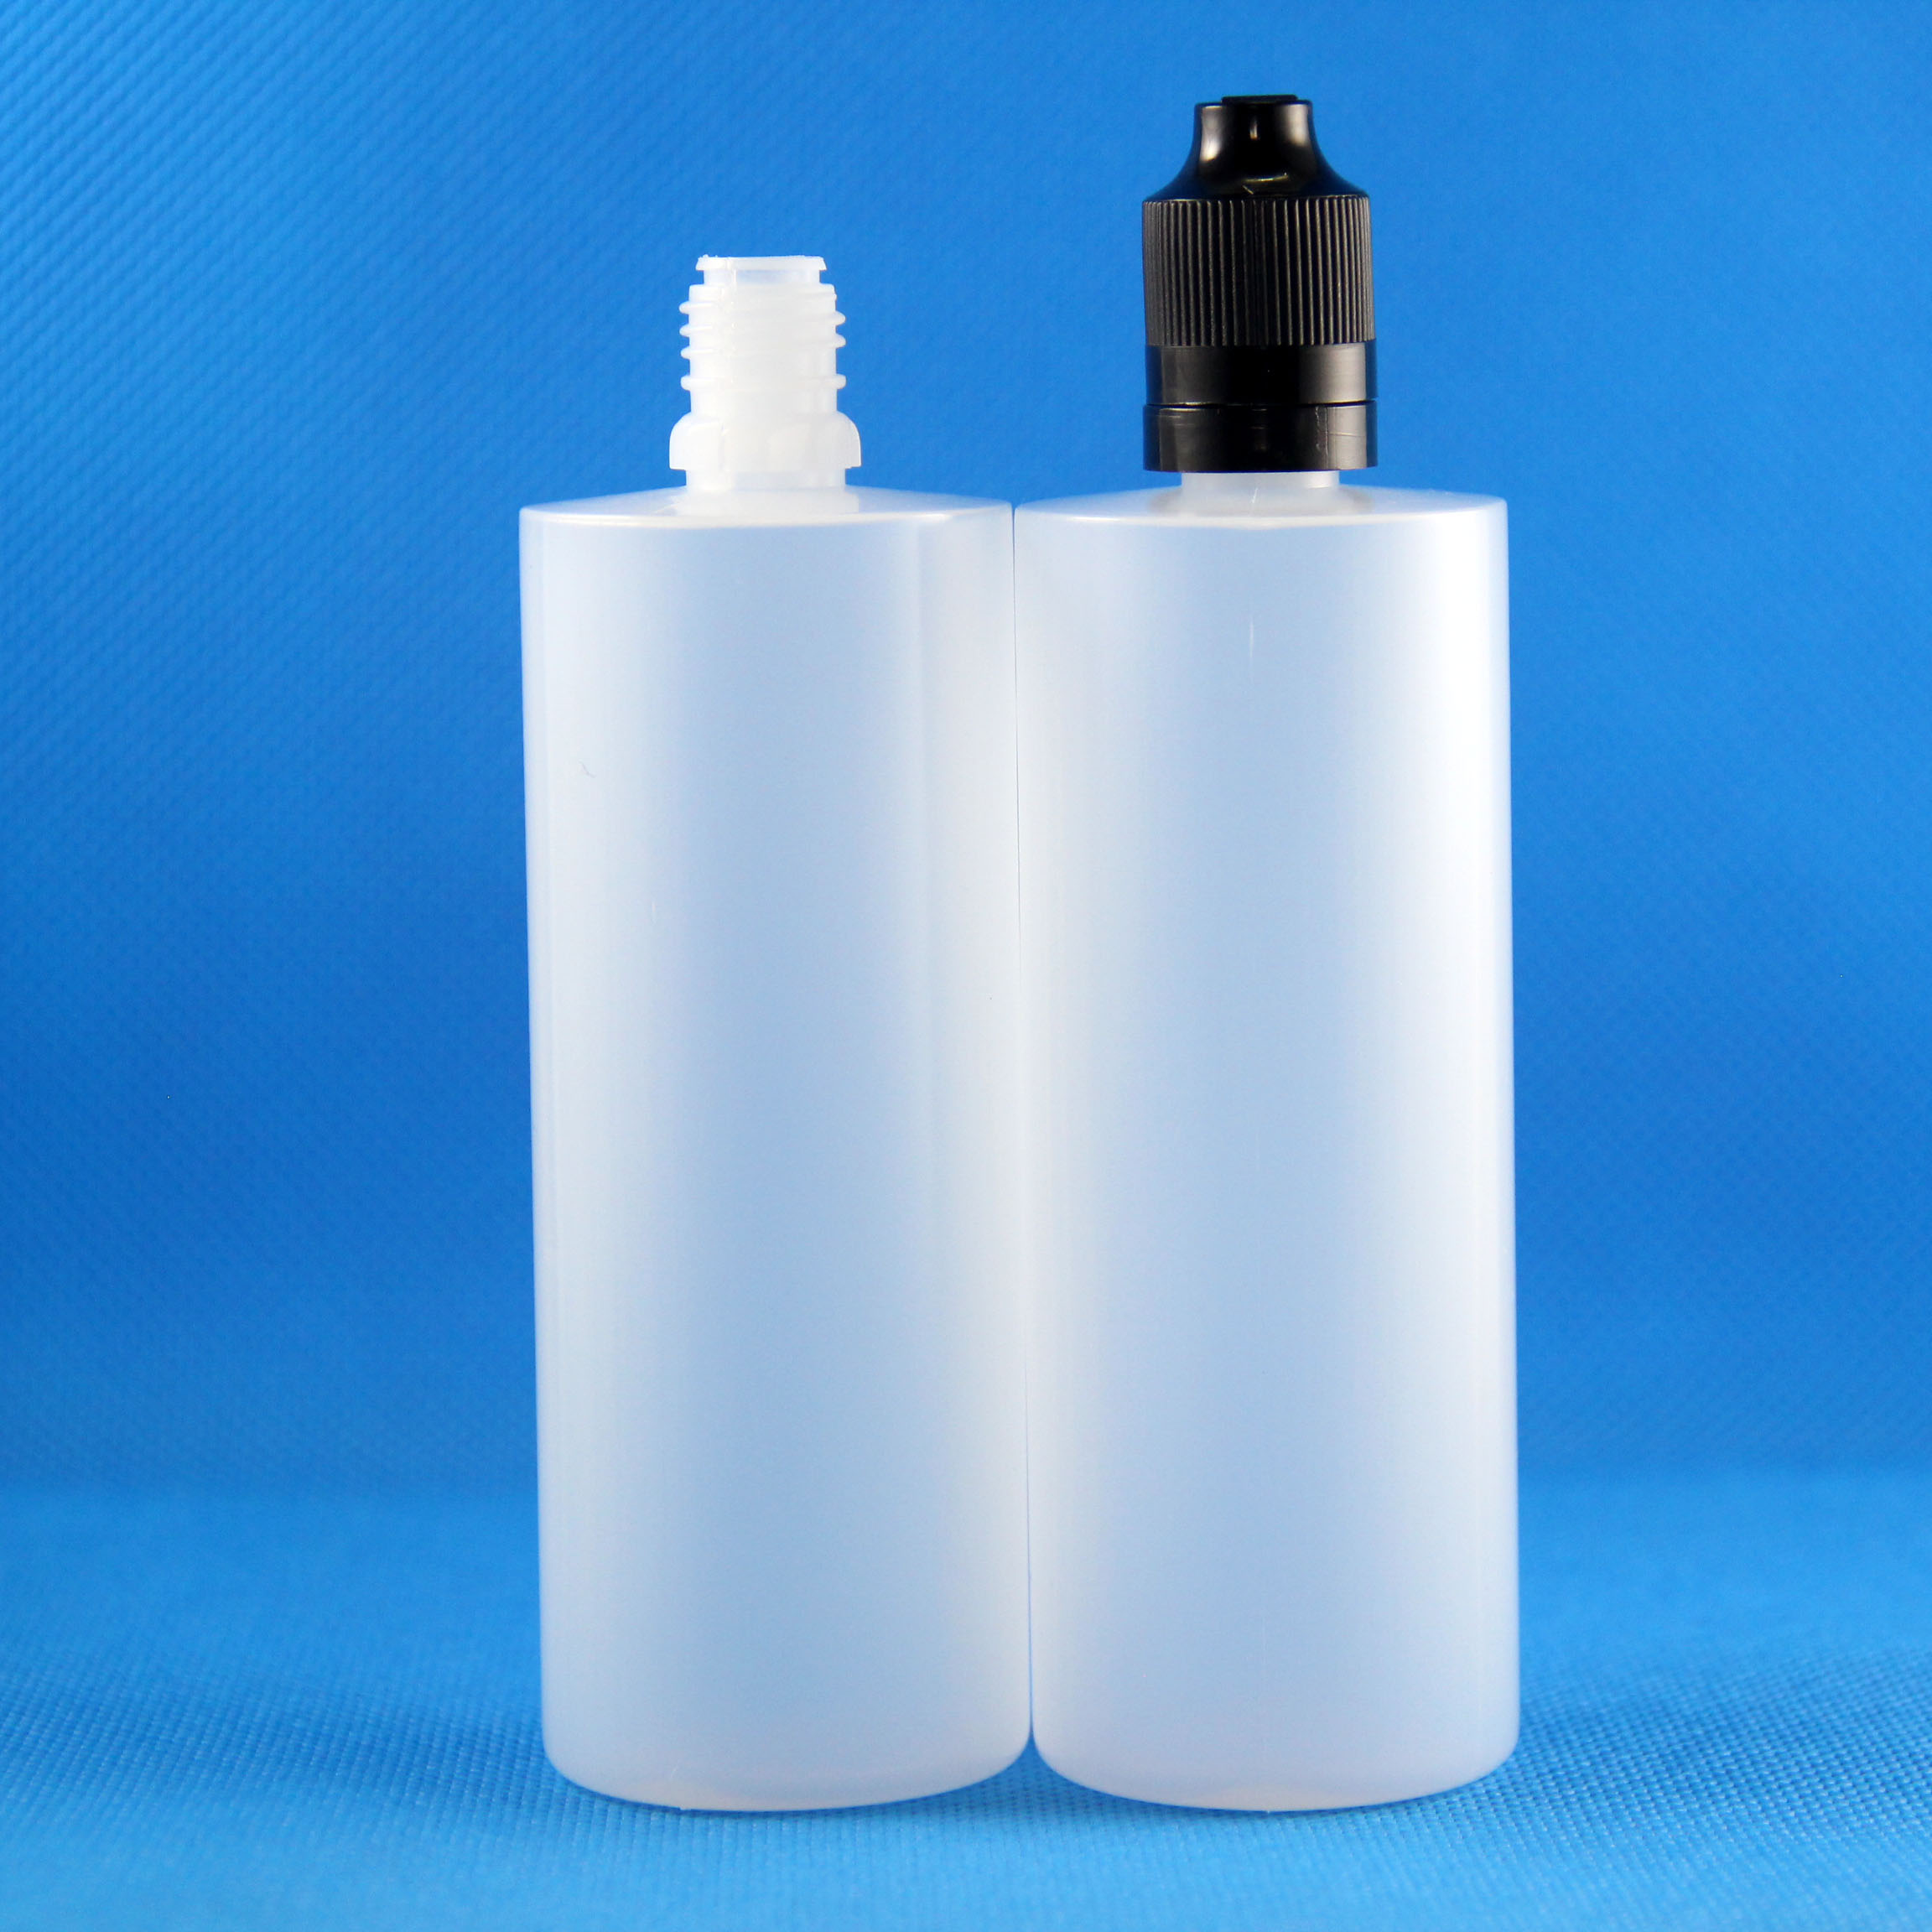 100 120ML LDPE Plastic Dropper Bottles Child & Tamper Proof caps